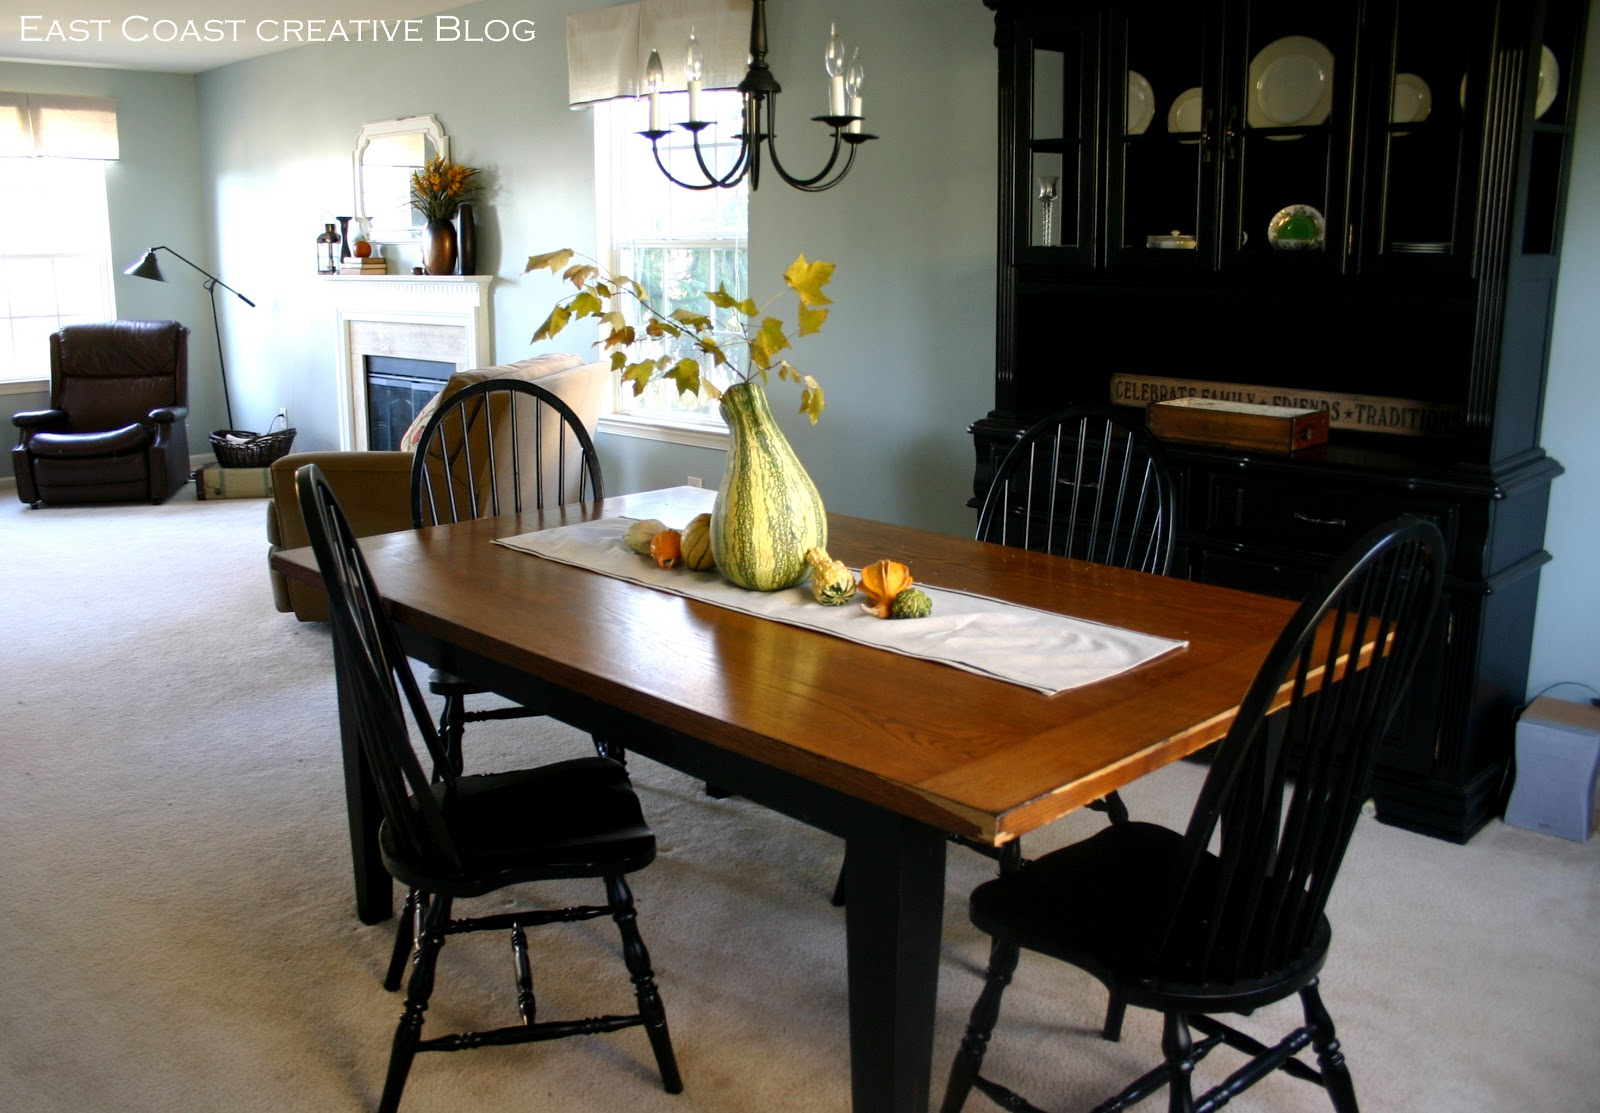 Refinished Dining Room Table {Furniture Makeover} - East Coast ...